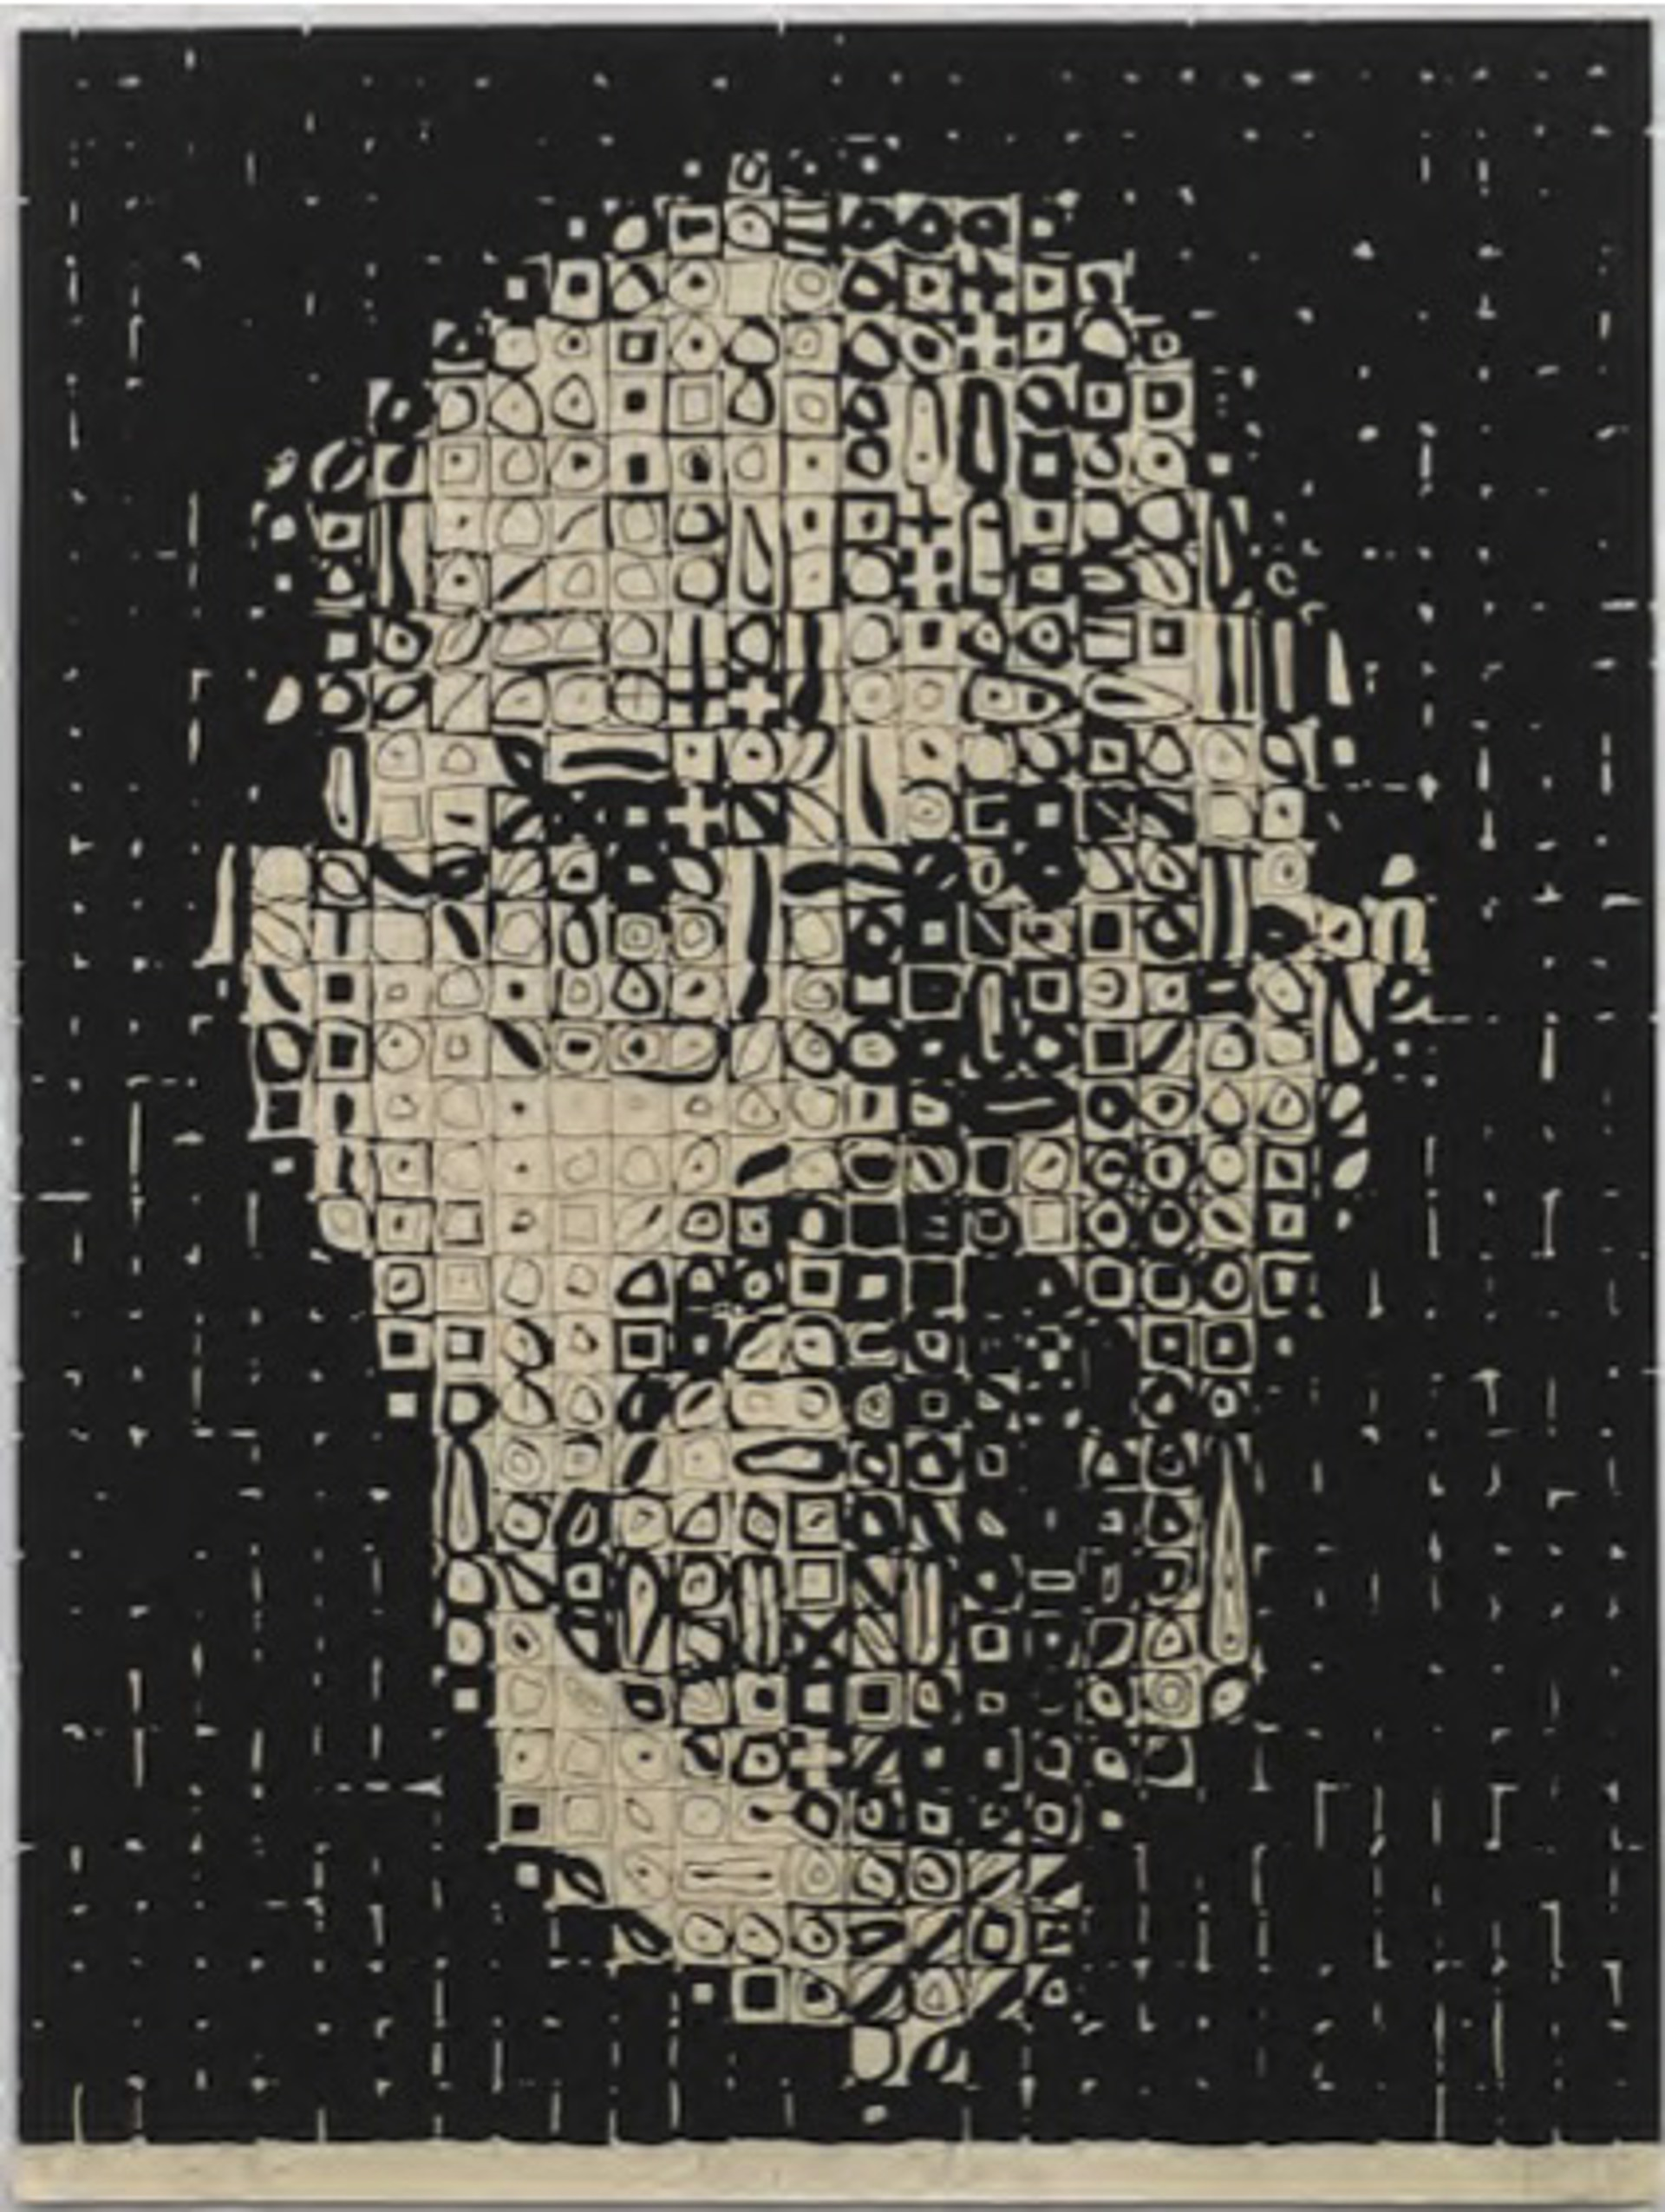 Self Portrait #1 by Chuck Close